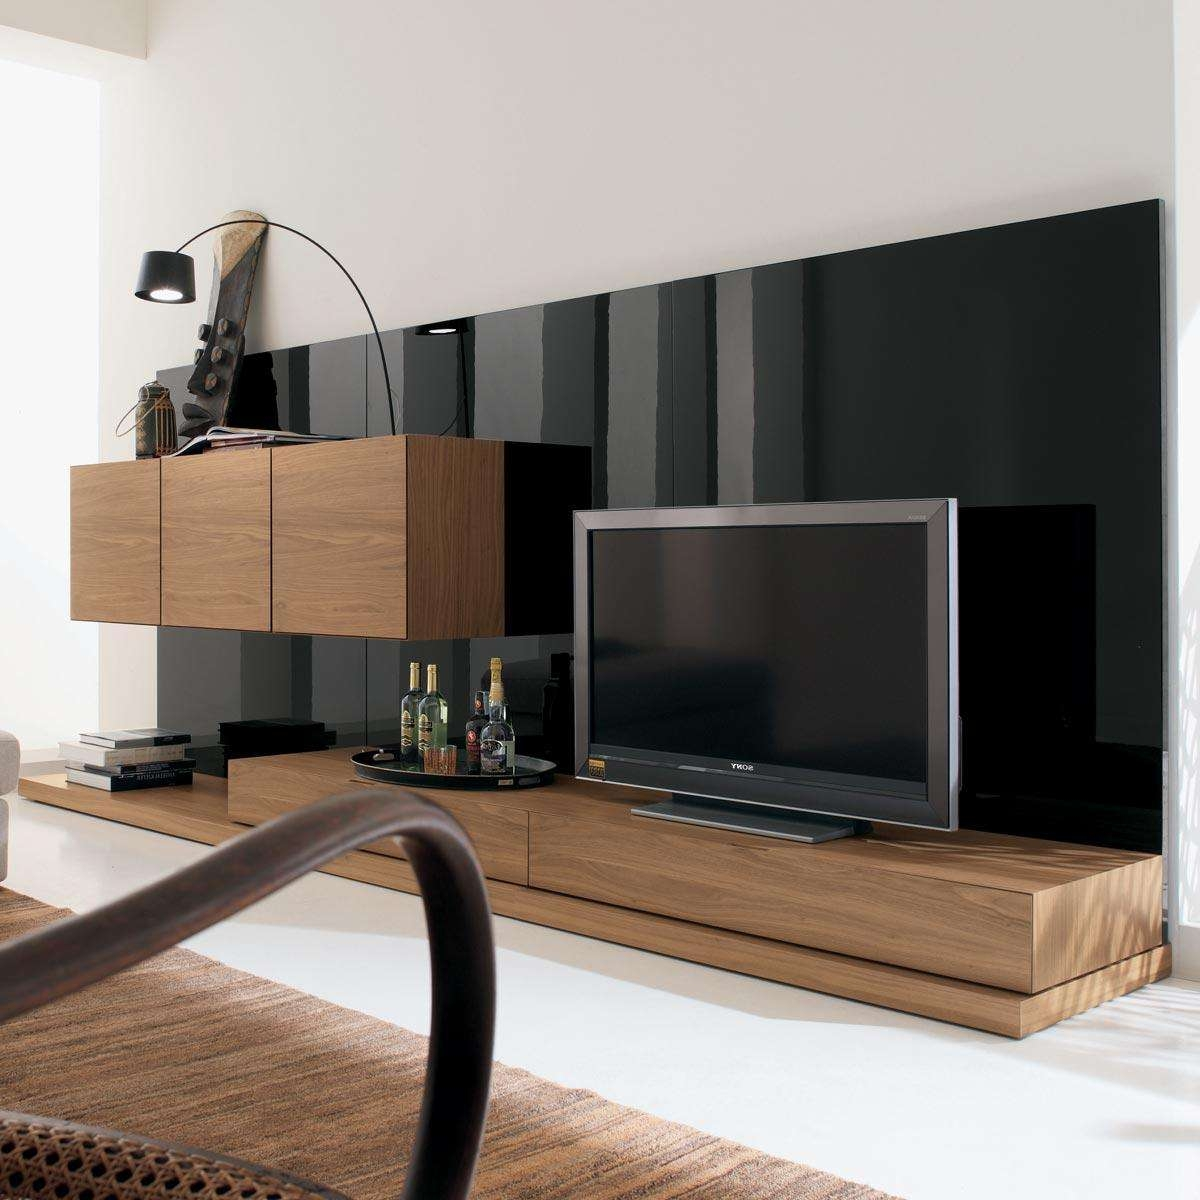 Modern Nature Wood Big Screen Tv Stand Wall Mounted Living Room Within Modern Tv Cabinets Designs (View 16 of 20)